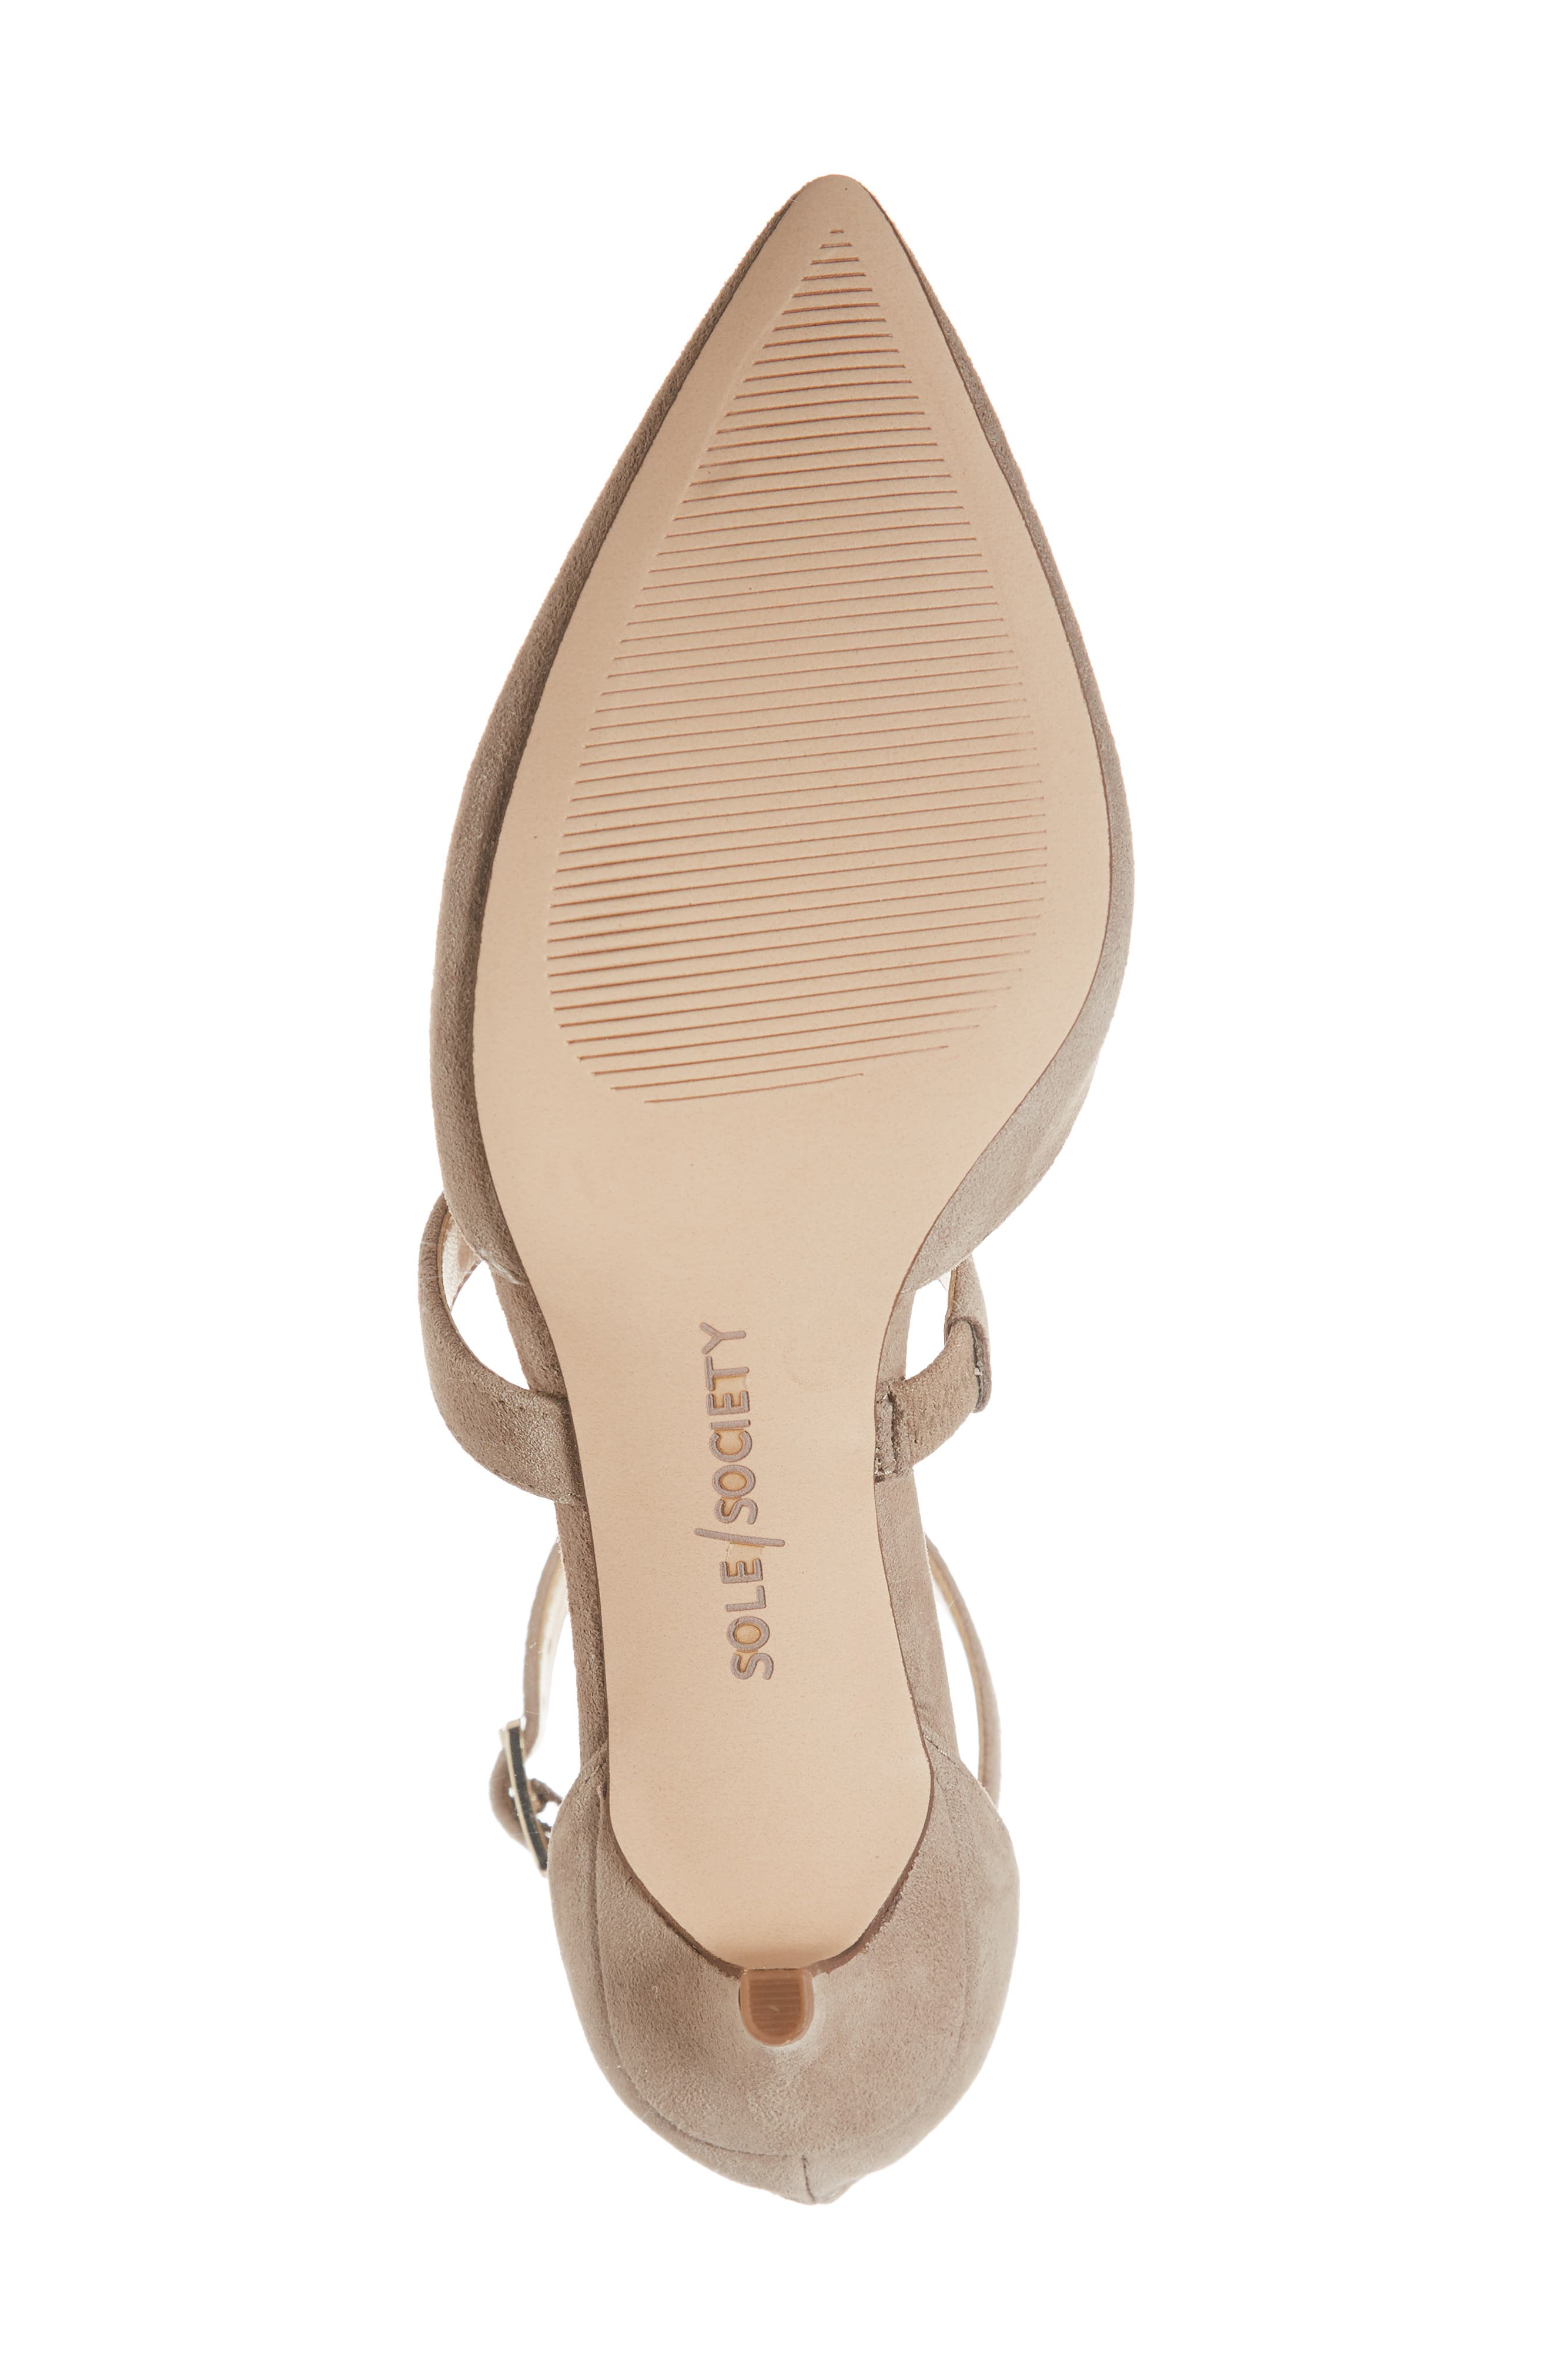 SOLE SOCIETY, Edelyn Pump, Alternate thumbnail 6, color, FALL TAUPE SUEDE